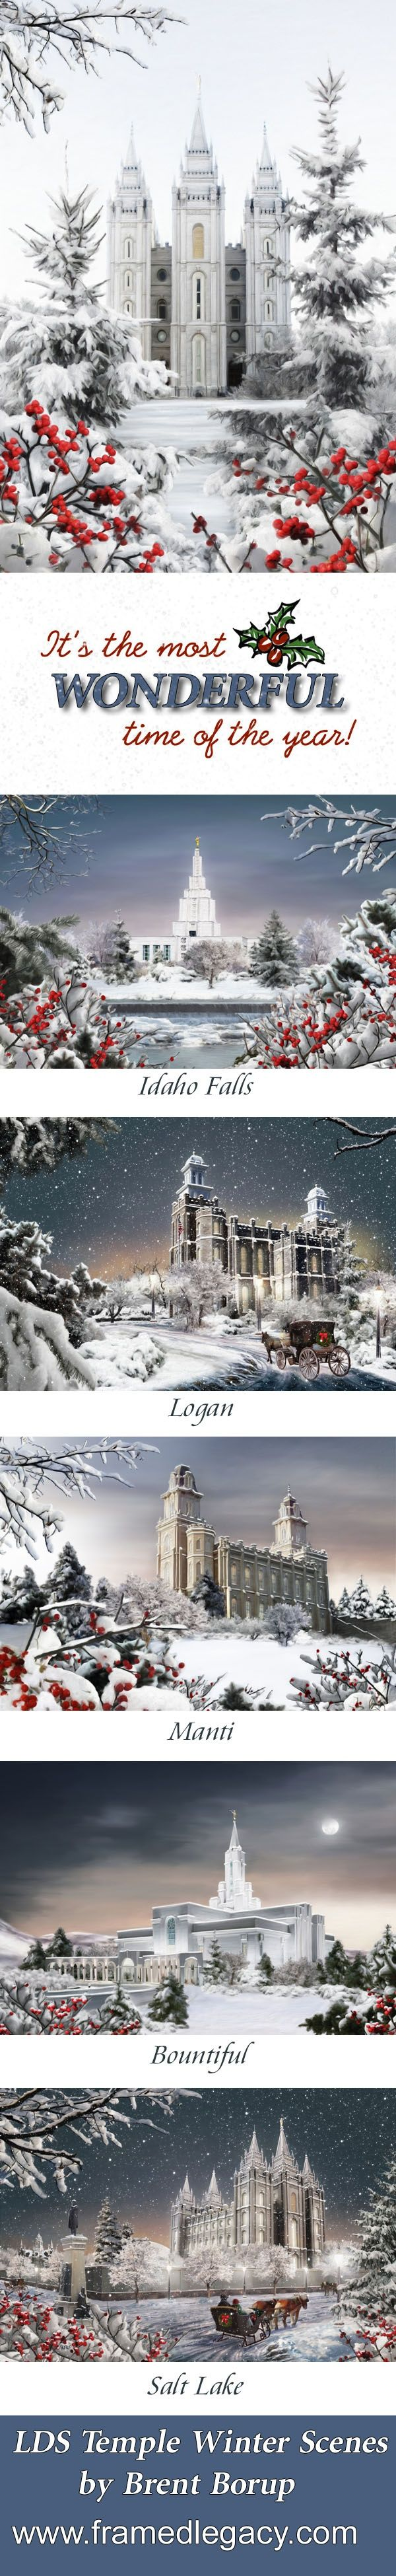 Lds temple ornaments - Lds Temple Winter Scenes By Brent Borup I Am In Love With These Pictures